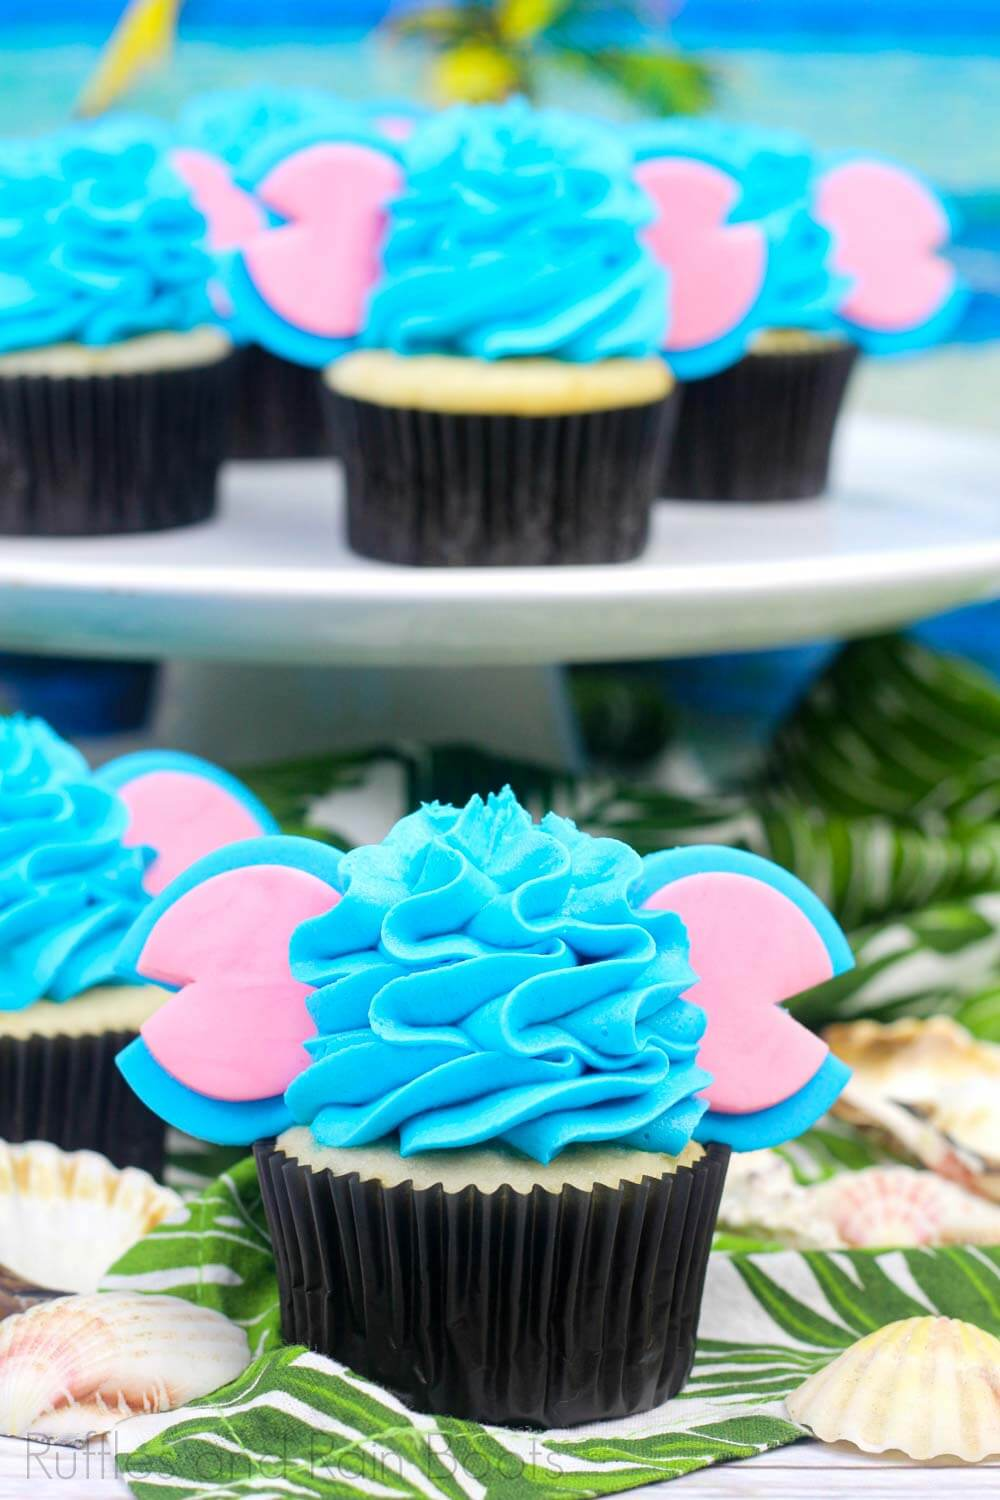 close up of buttercream frosting on cupcake with blue and pink Mickey mouse ears on white cake platter and tropical party background